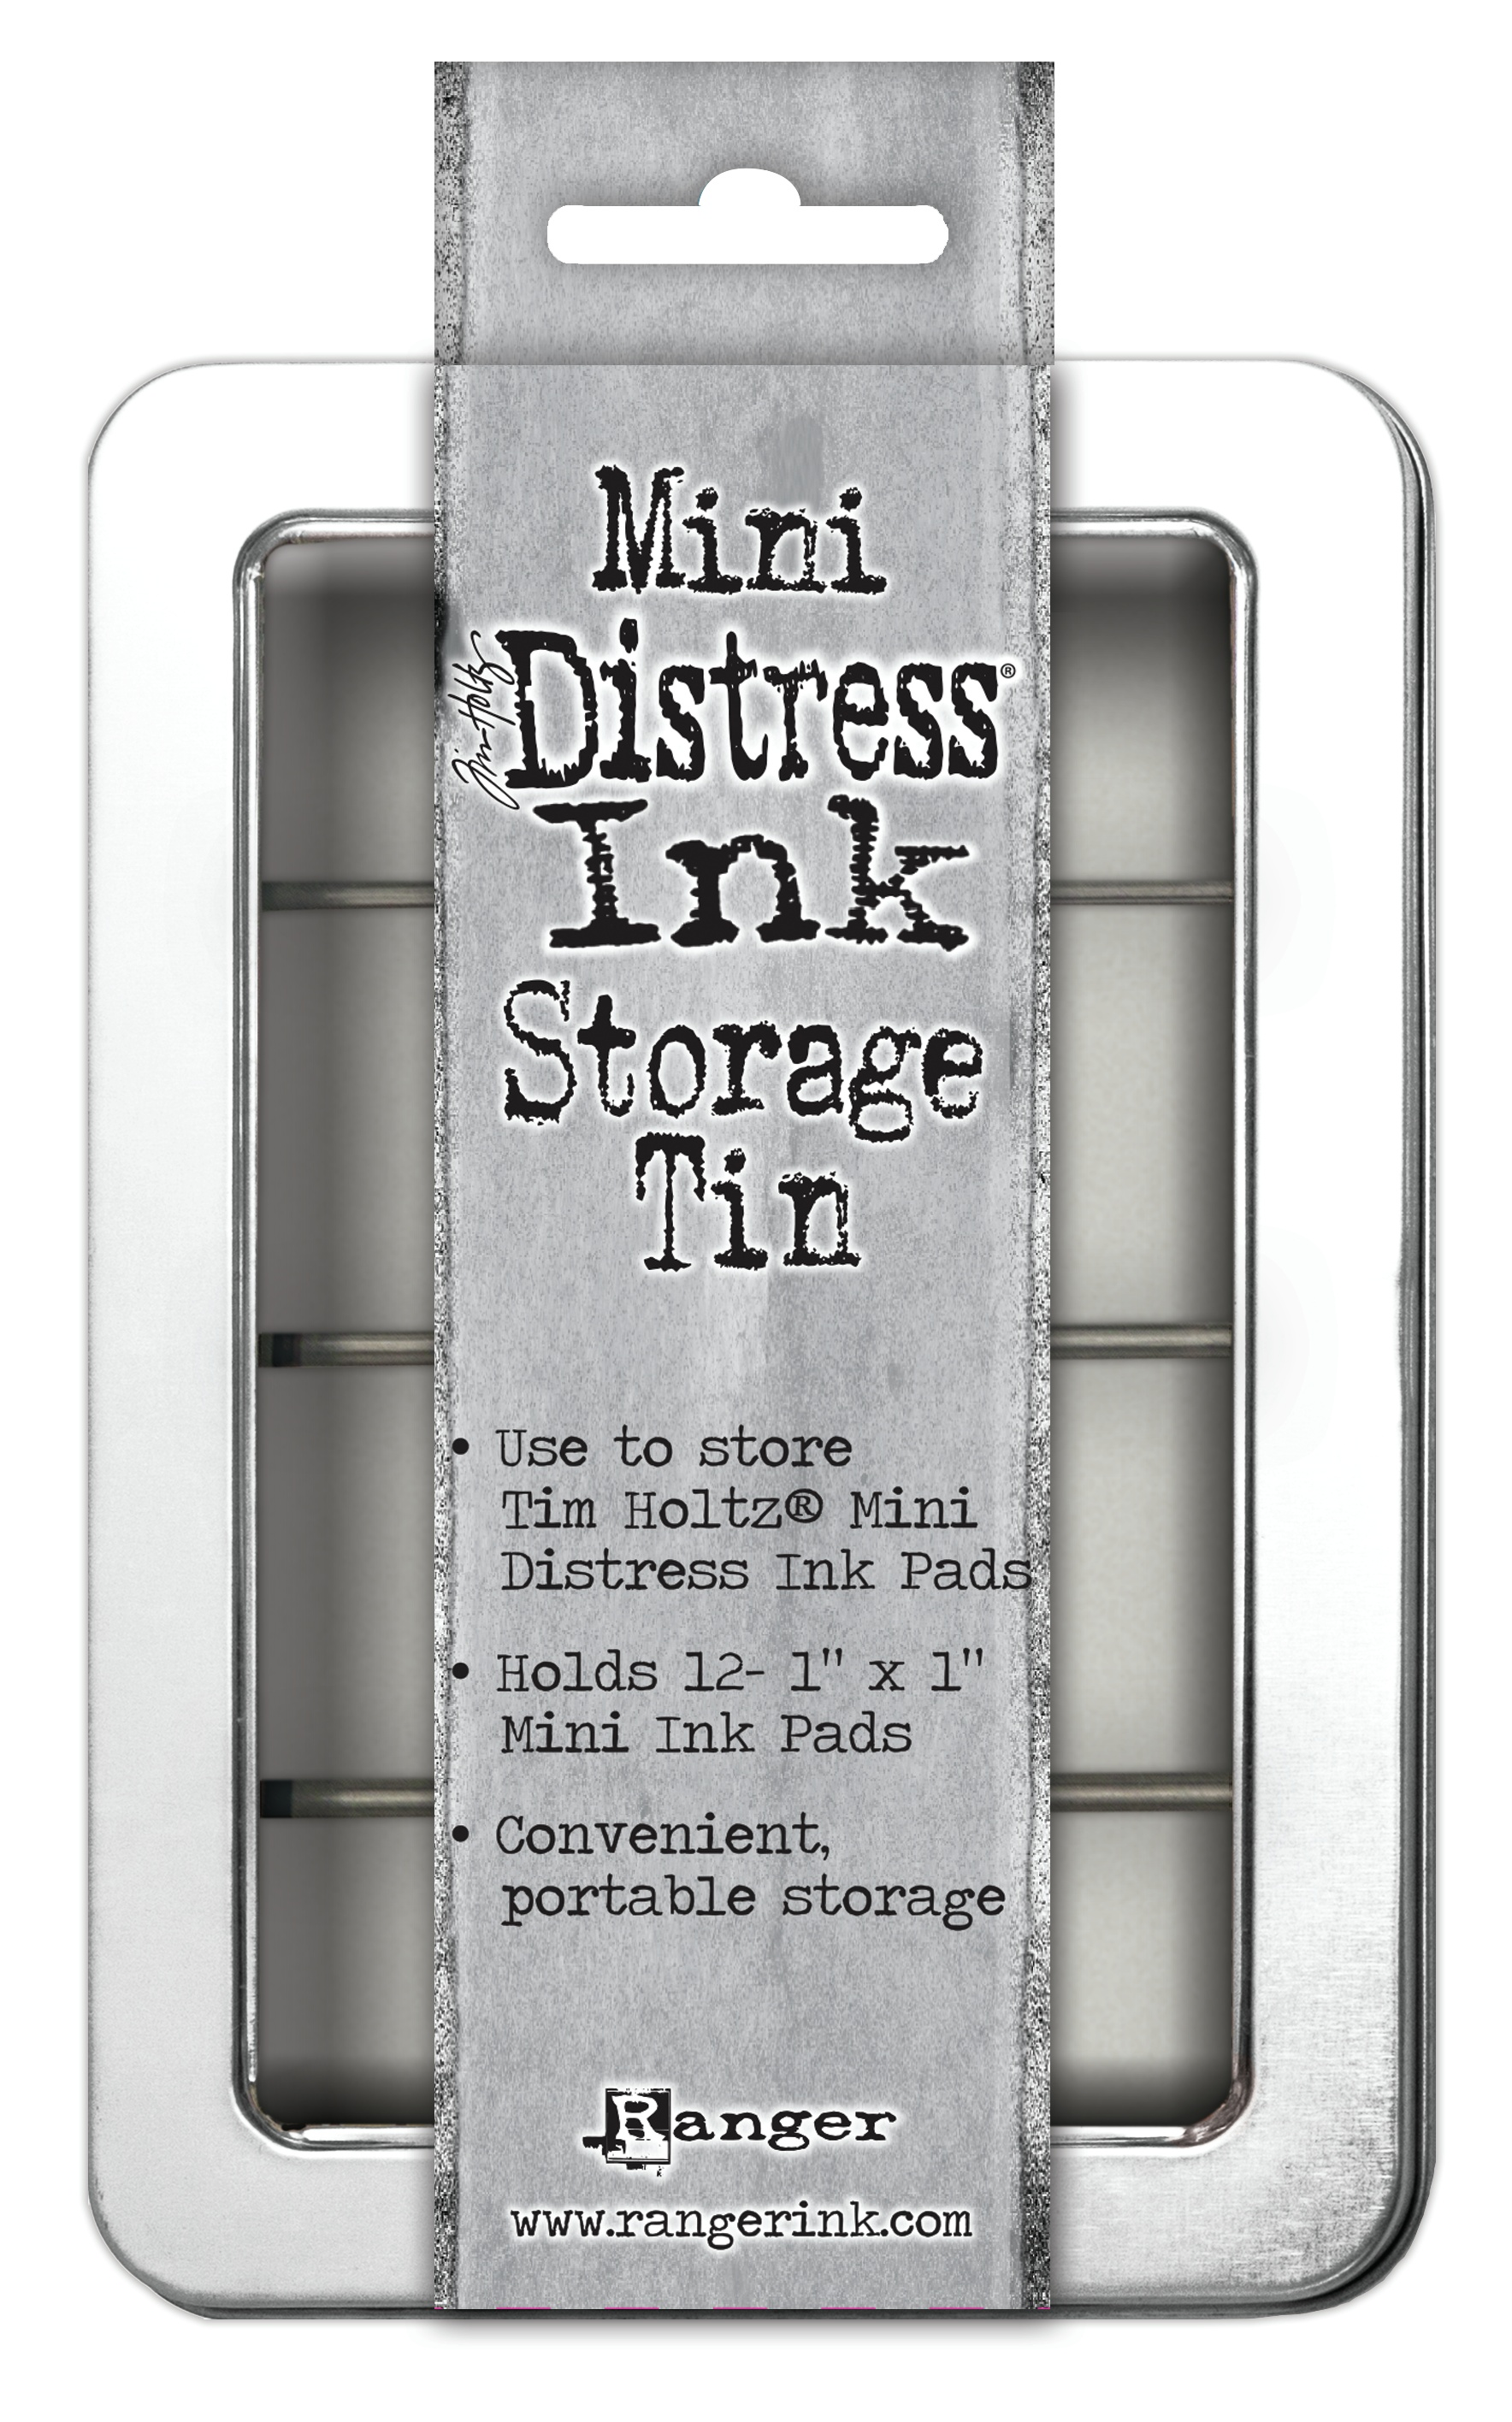 Mini Distress Ink Storage Tin